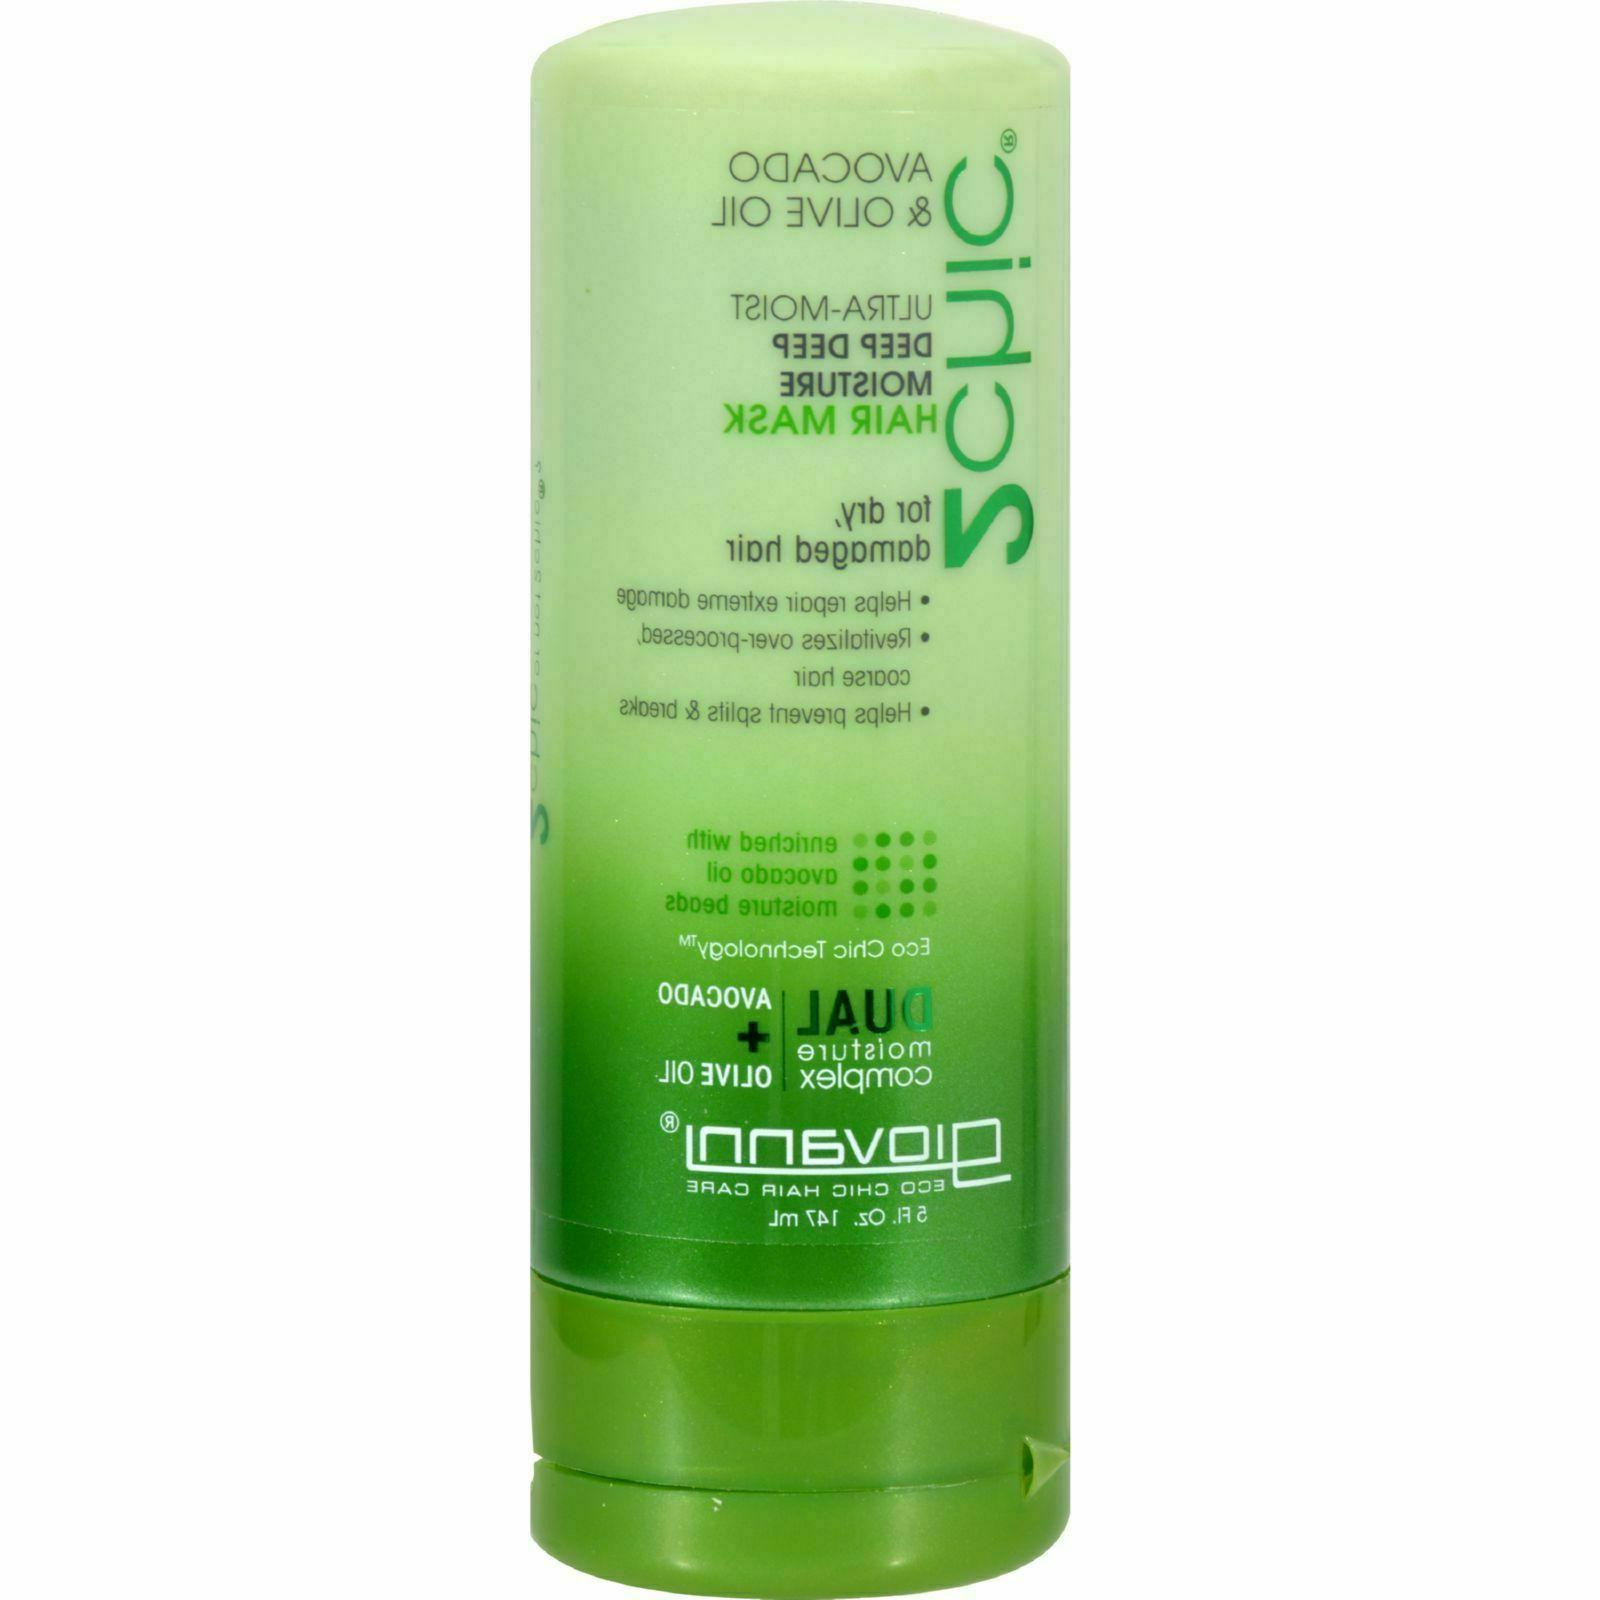 Giovanni - Hair Mask 2Chic Avacado & Olive Oil 5 Oz by Giova